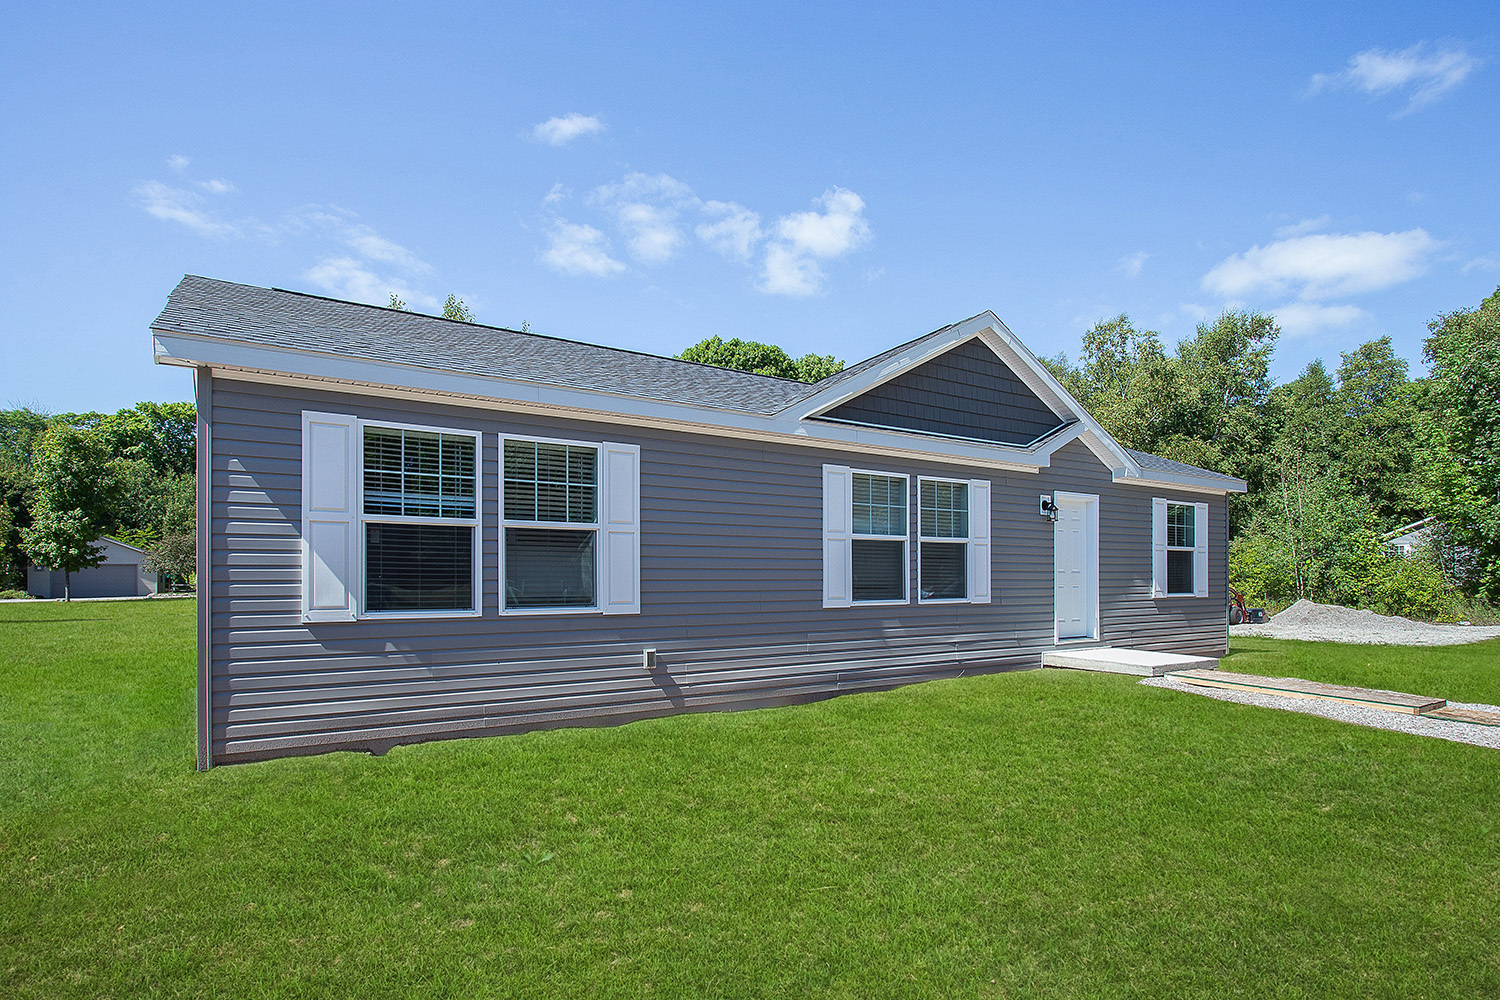 New Construction Homes for Sale in Door County, WI